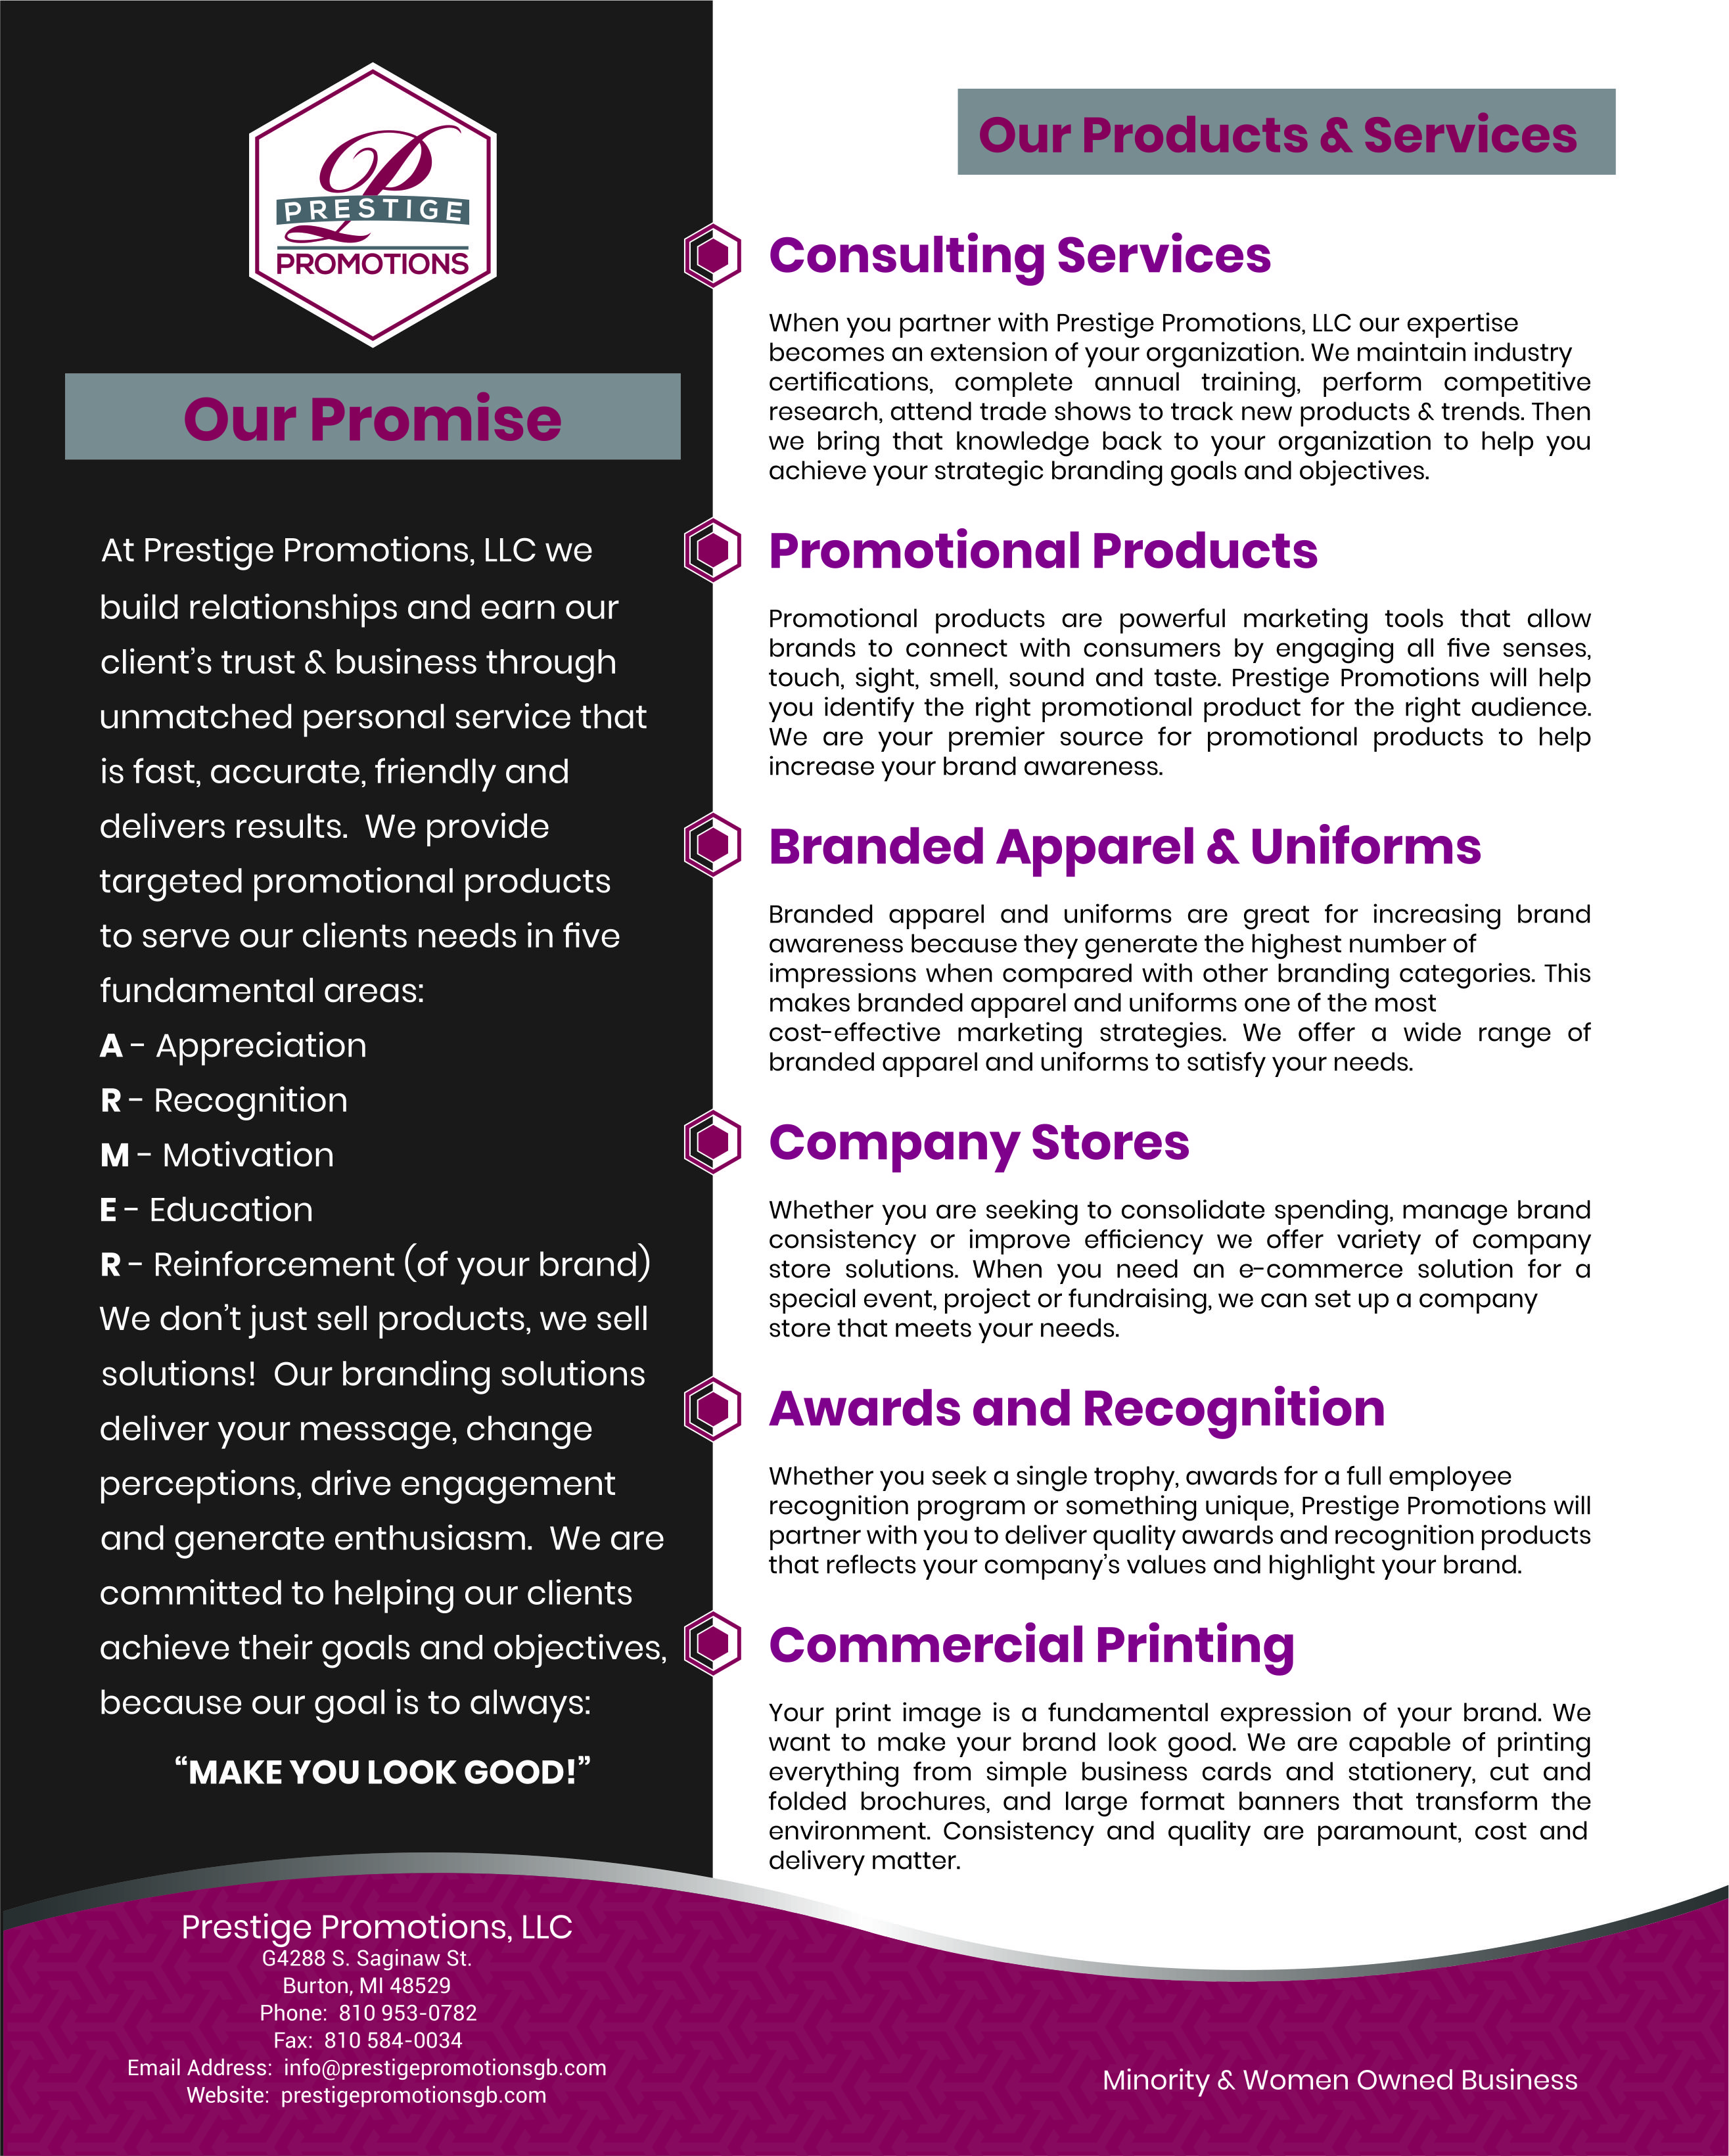 Our Products & Services